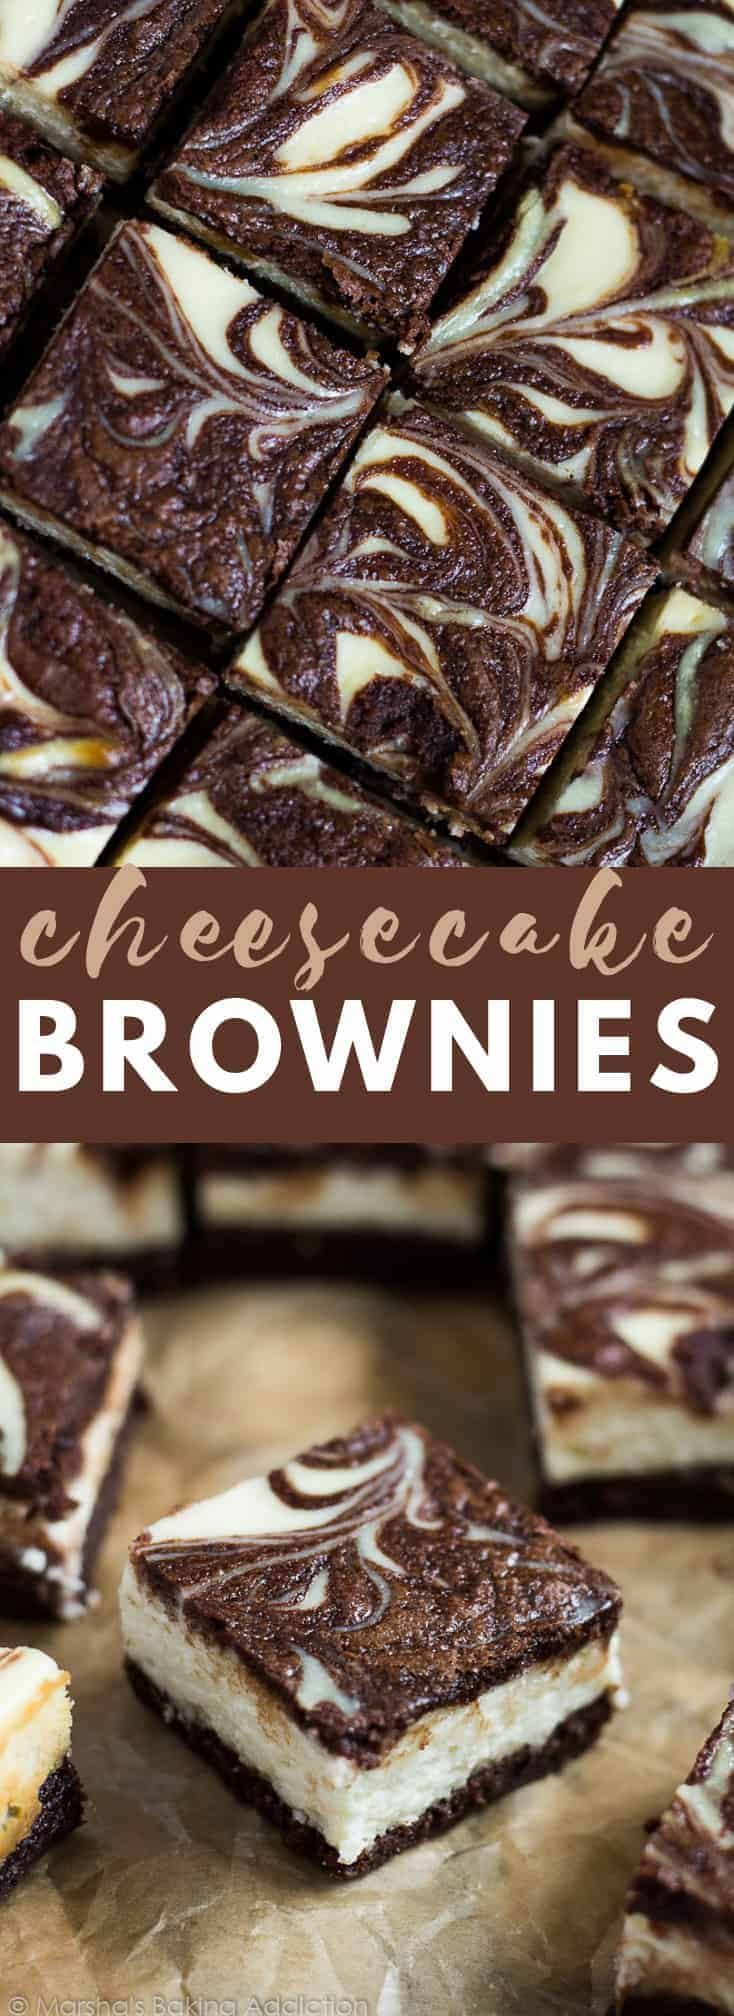 Cheesecake Brownies Cheesecake Brownies - Scrumptiously rich and fudgy brownies topped with a cream